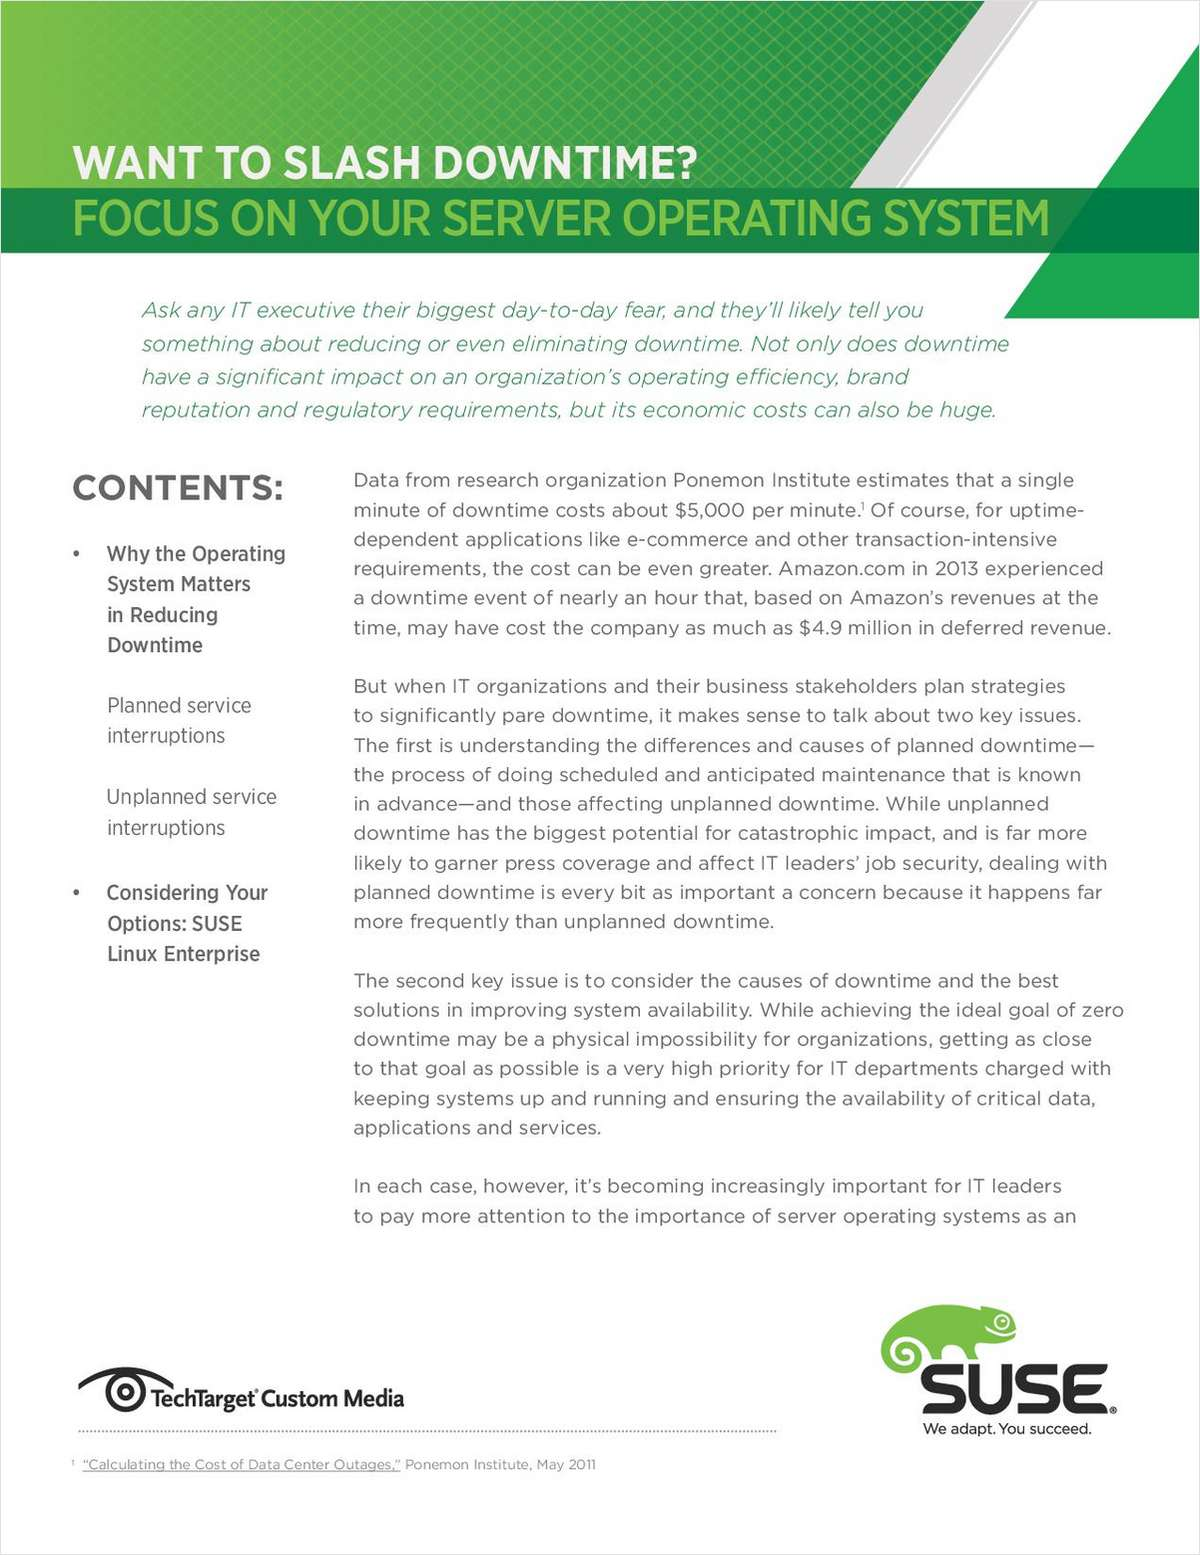 Want to Slash Downtime? Focus on Your Server Operating System